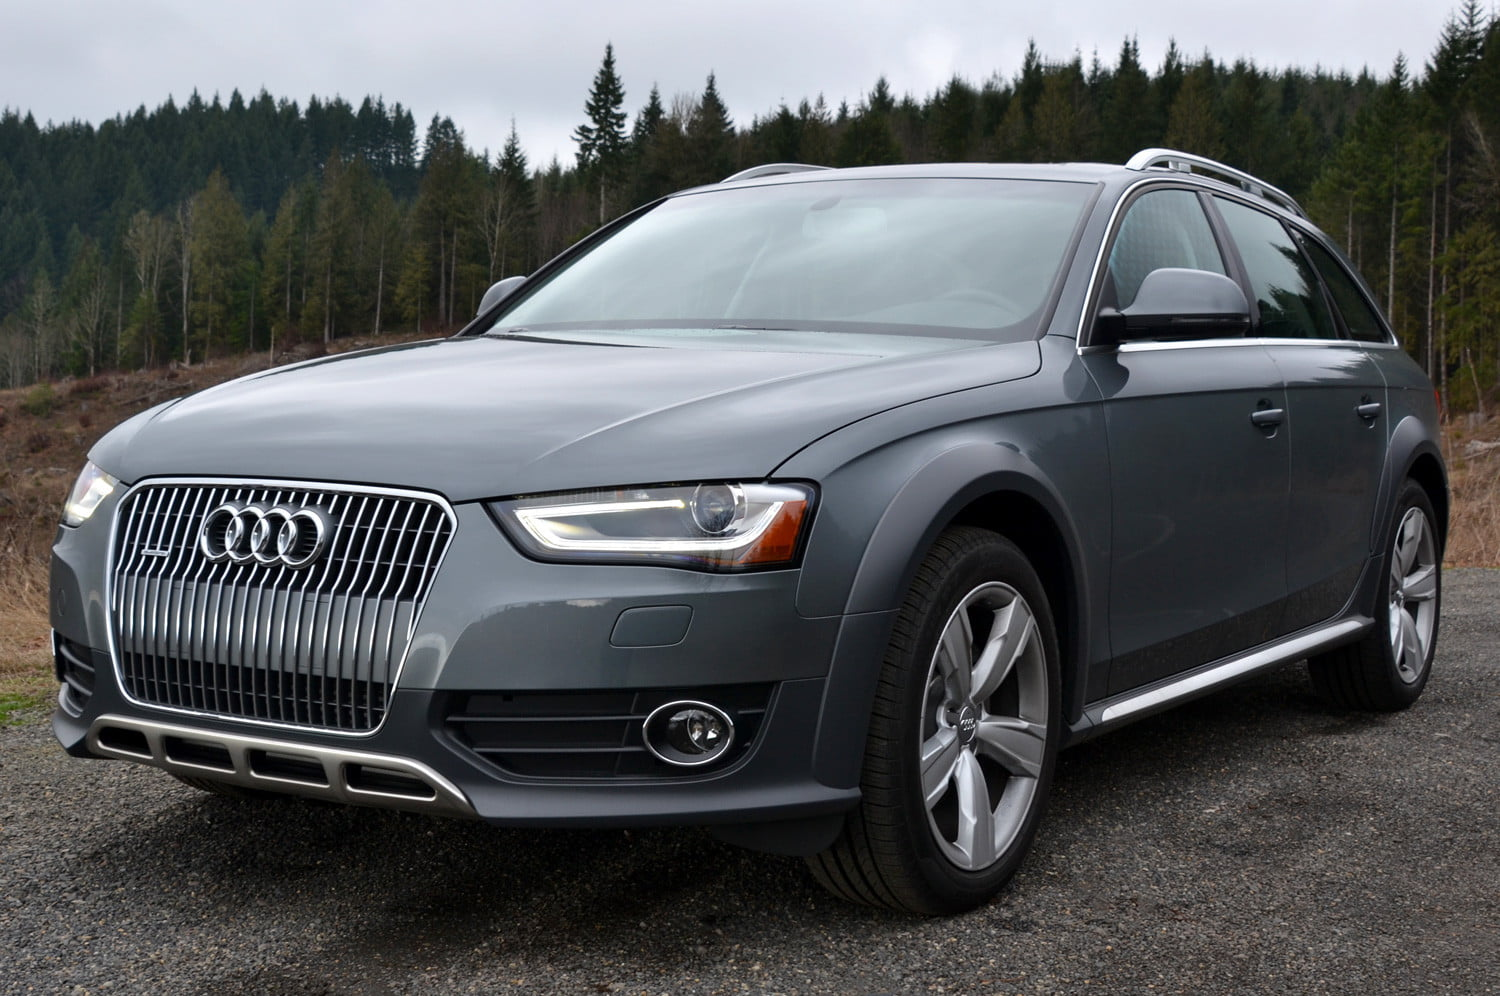 review audi 2013 allroad needs someroad to thrive but wins style points at the mountain wide [ 1500 x 996 Pixel ]